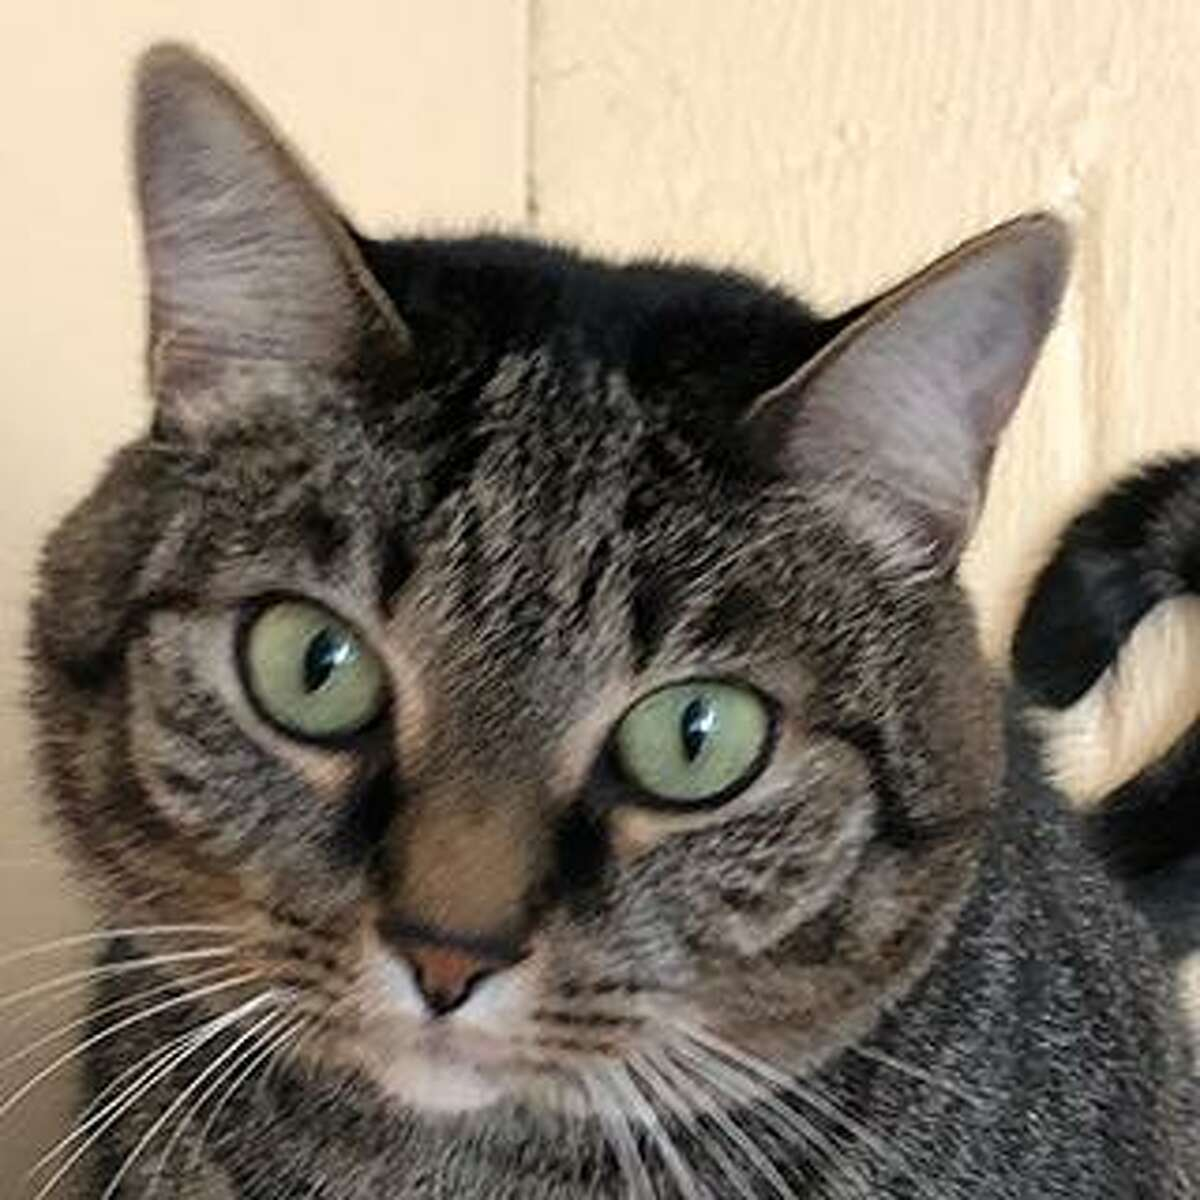 Meet Kriesty, a beautiful 6 year old tabby. If you're a sucker for green eyes, this girl is for you. She's an independent cat with low energy and beautiful house manners who has been a loved indoor cat with a single owner her whole life. She would prefer to be the sole companion to a person or a couple, unbothered by the comings and goings of kids and other pets. She is opinionated on what kind of attention she receives - she'll accept face and chin scratches forever, but prefers not to have her lower back ruffled. Because she is a bit particular, she is best suited to a family with previous cat experience who will know how to read her signals. She's available in Westport. Remember, the Connecticut Humane Society has no time limits for adoption. Applications for adoption can be obtained at https://cthumane.org/adopt/all-adoptable-pets/. To learn more about operations during COVID-19, go to https://cthumane.org/adopt/adoption-process/.